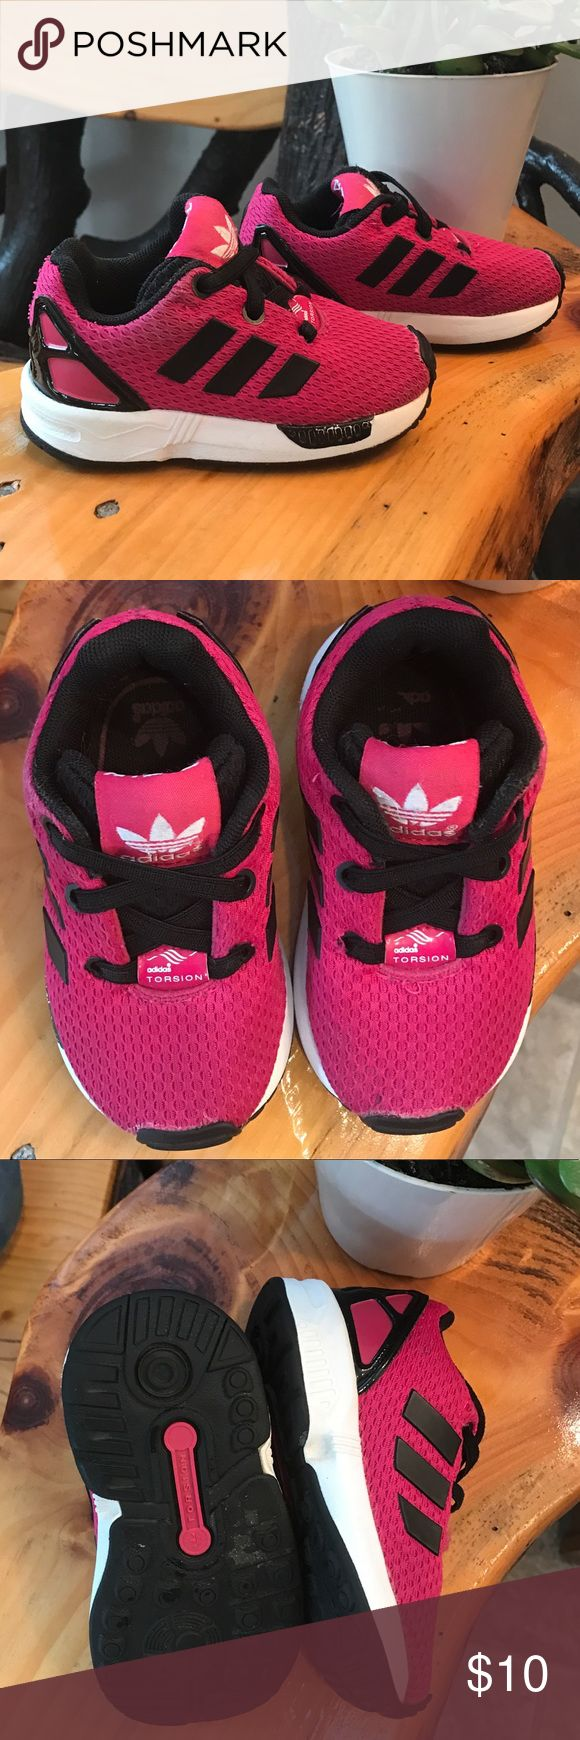 Adidas Shoes- Little Girl Hot pink, white and black patent leather Adidas Torsion ZX Flux. Size 5K/5 Toddler. Good used condition. adidas Shoes Sneakers